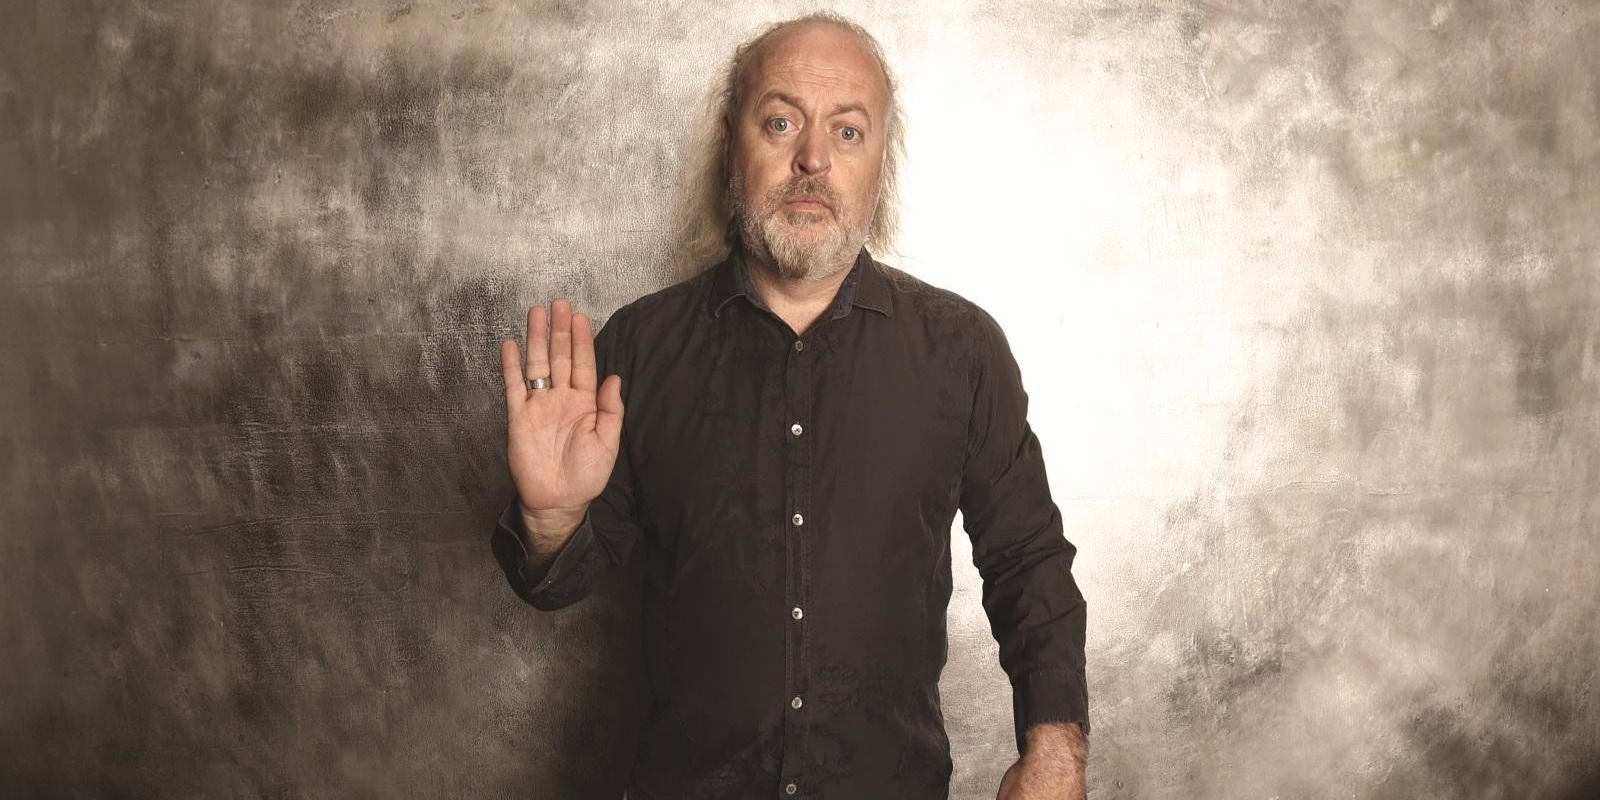 Legendary British comedy musician Bill Bailey to perform in Singapore